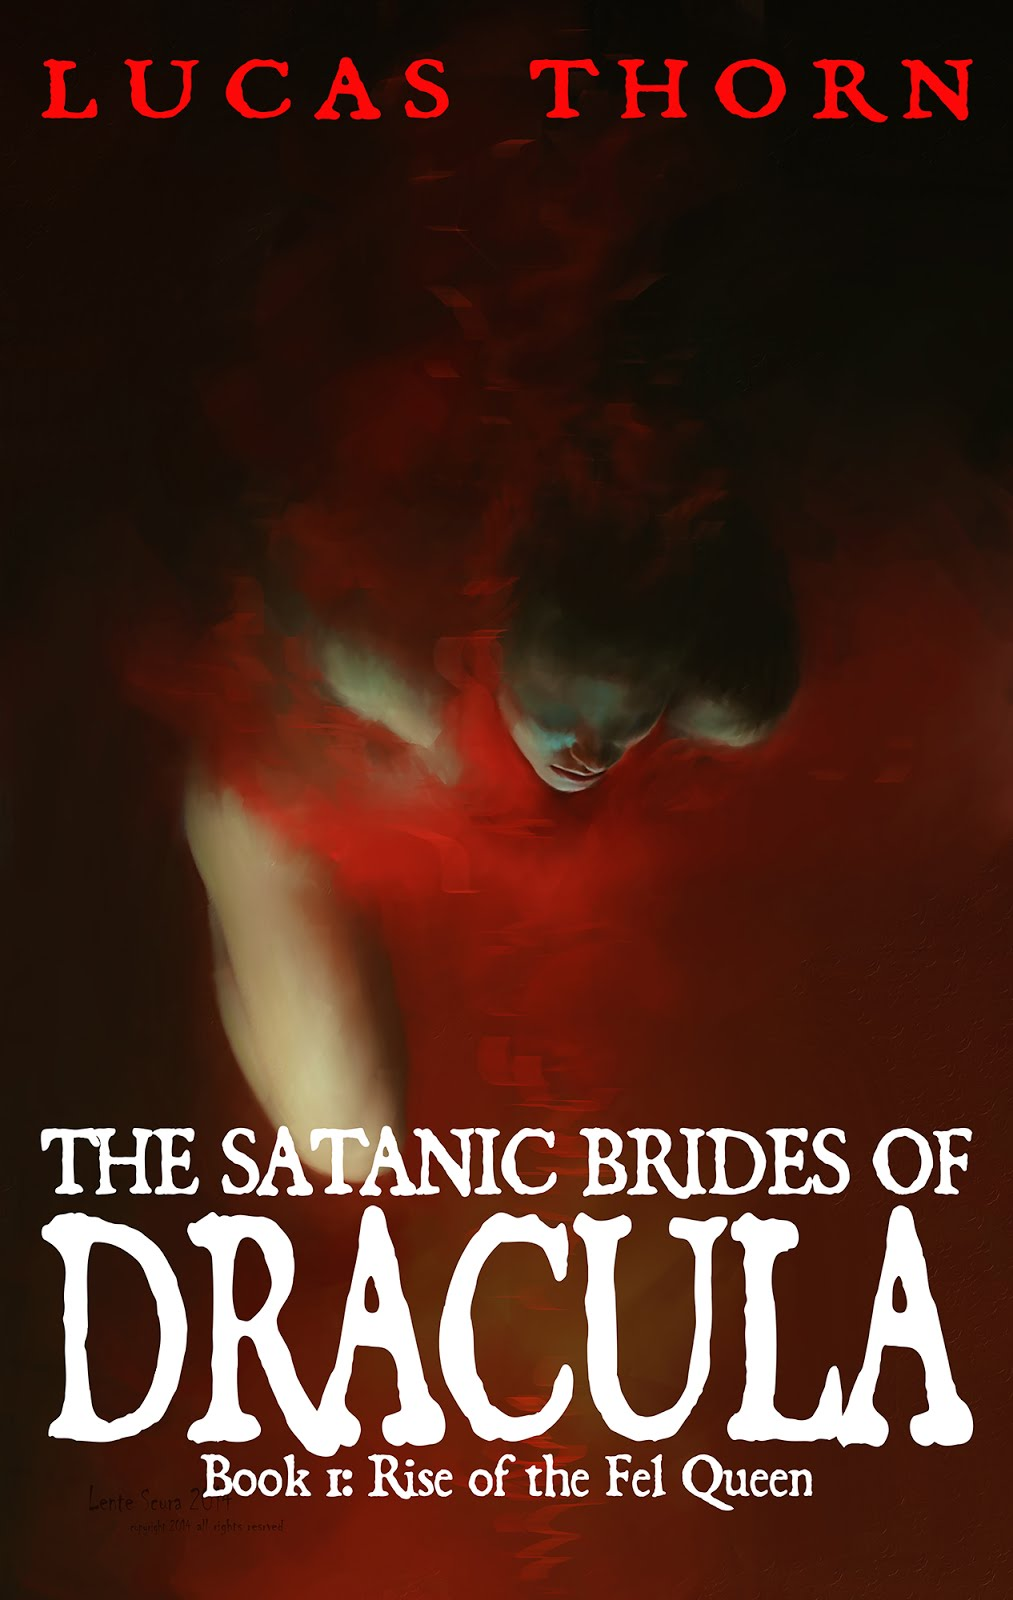 'The Satanic Brides of Dracula' is a fiendishly original new Gothic Horror Series